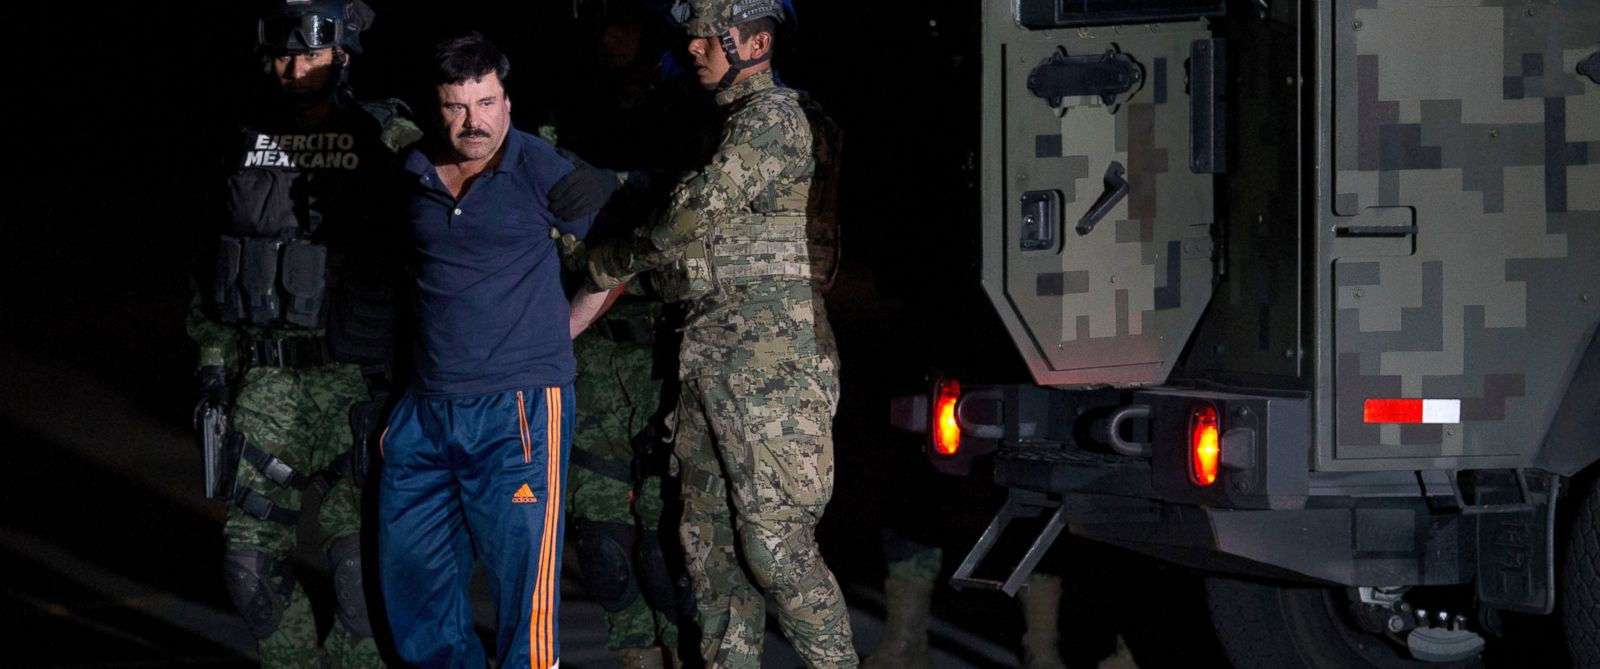 "PHOTO: Mexican drug lord Joaquin ""El Chapo"" Guzman is escorted by soldiers and marines to a waiting helicopter, at a federal hangar in Mexico City, Friday, Jan. 8, 2016."